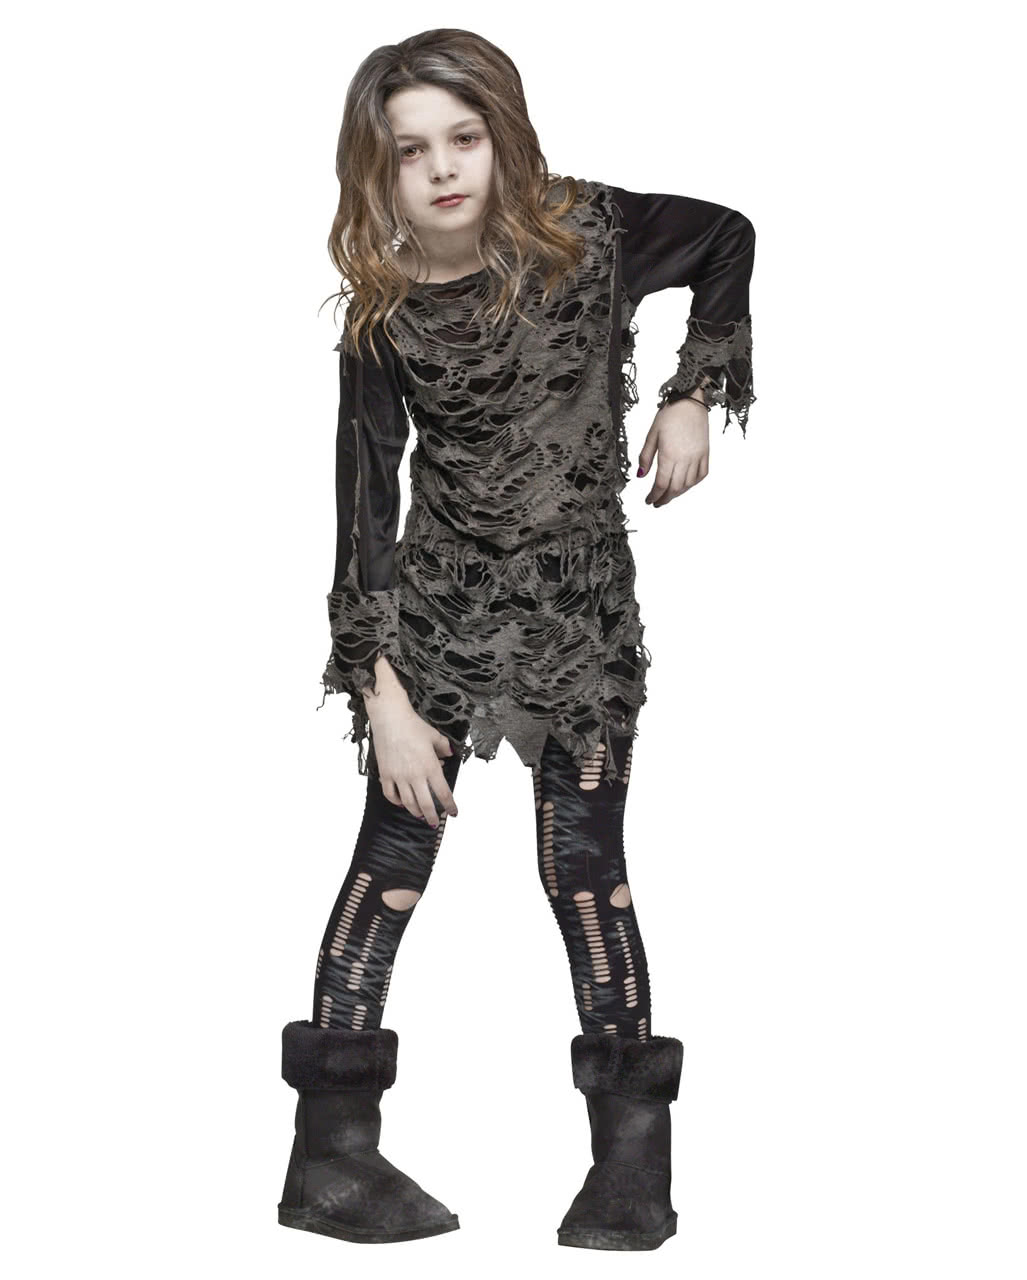 Halloween Zombie Costumes For Girls.Walking Zombie Costume For Girls